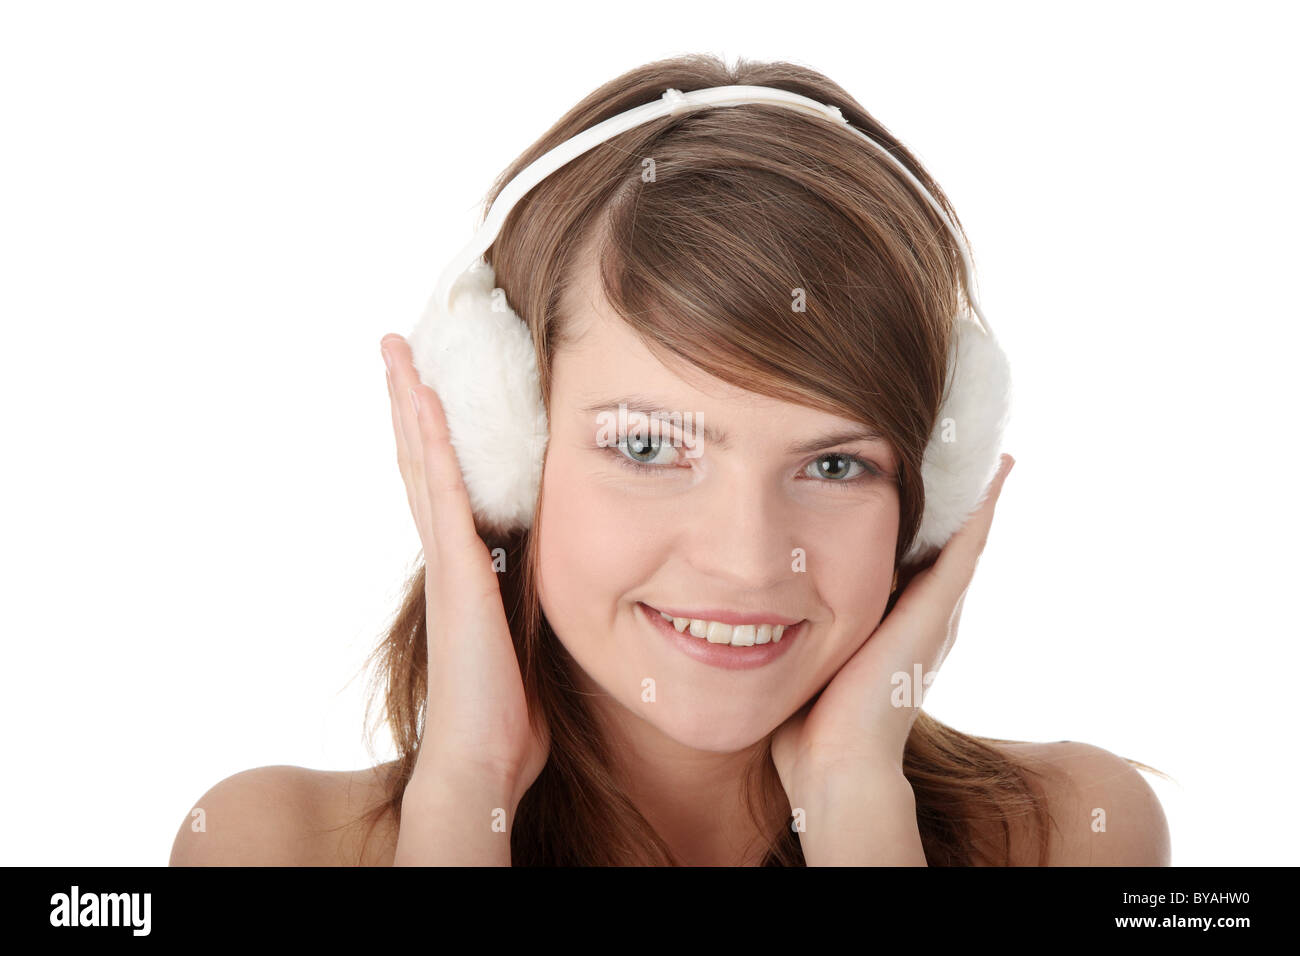 9069ee0e11 Cold Woman Wearing Ear Muffs Stock Photos   Cold Woman Wearing Ear ...